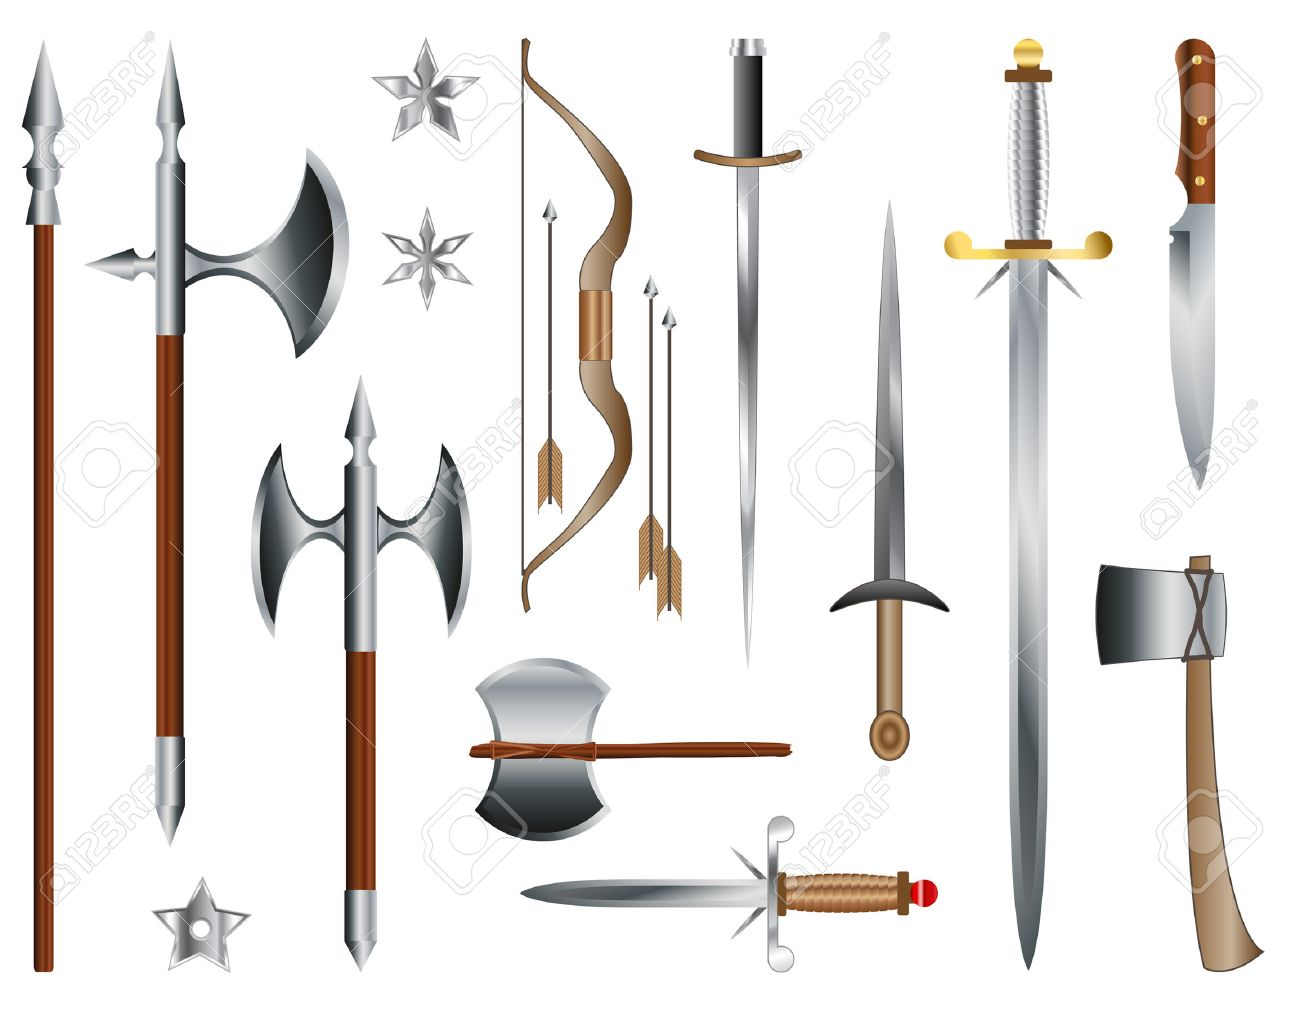 Swords, axes and bow. Medieval weapons - 32518358